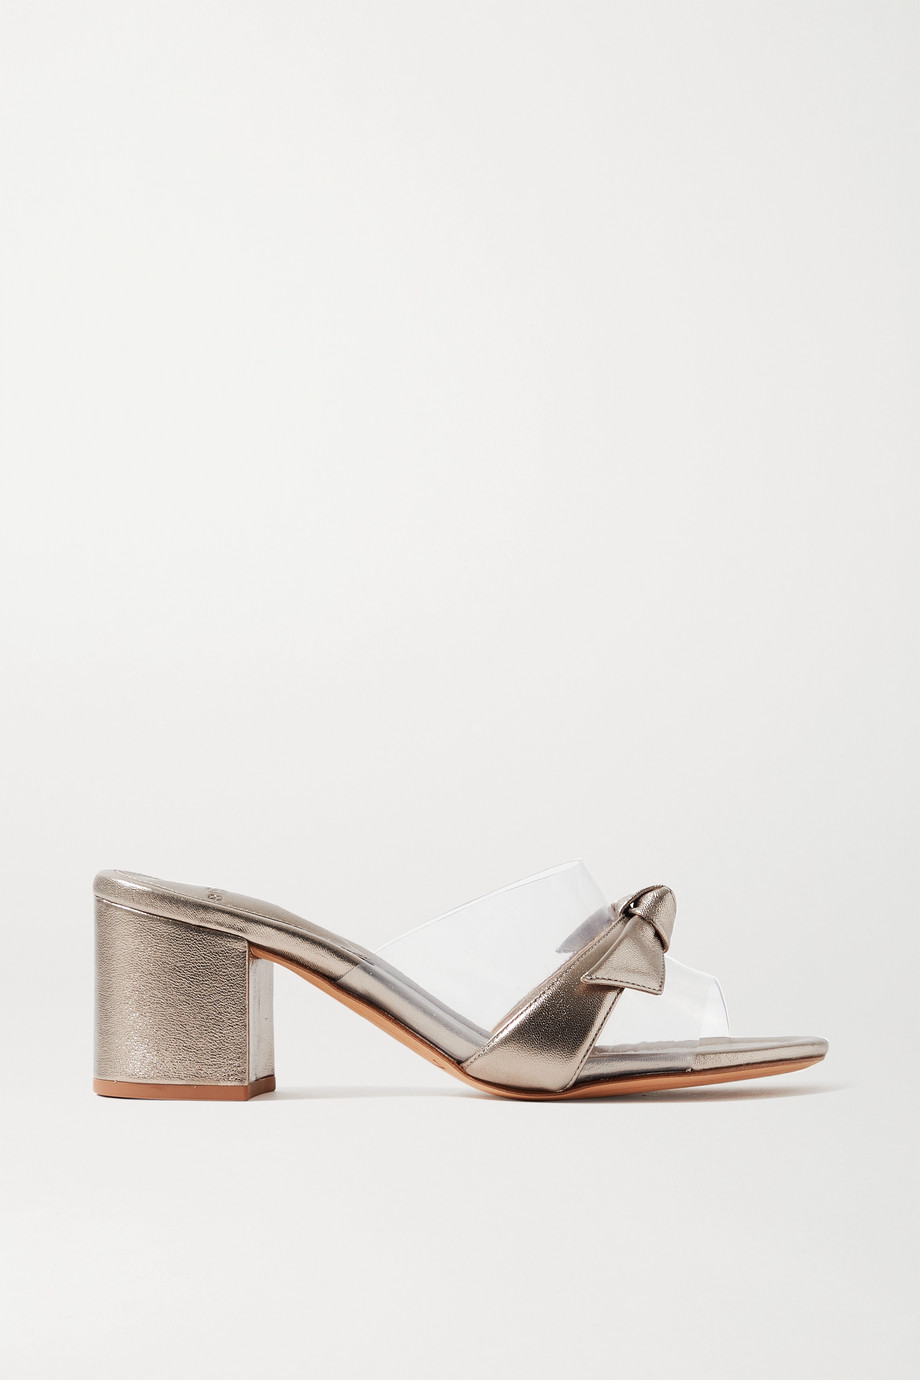 Alexandre Birman Clarita PVC and metallic leather mules